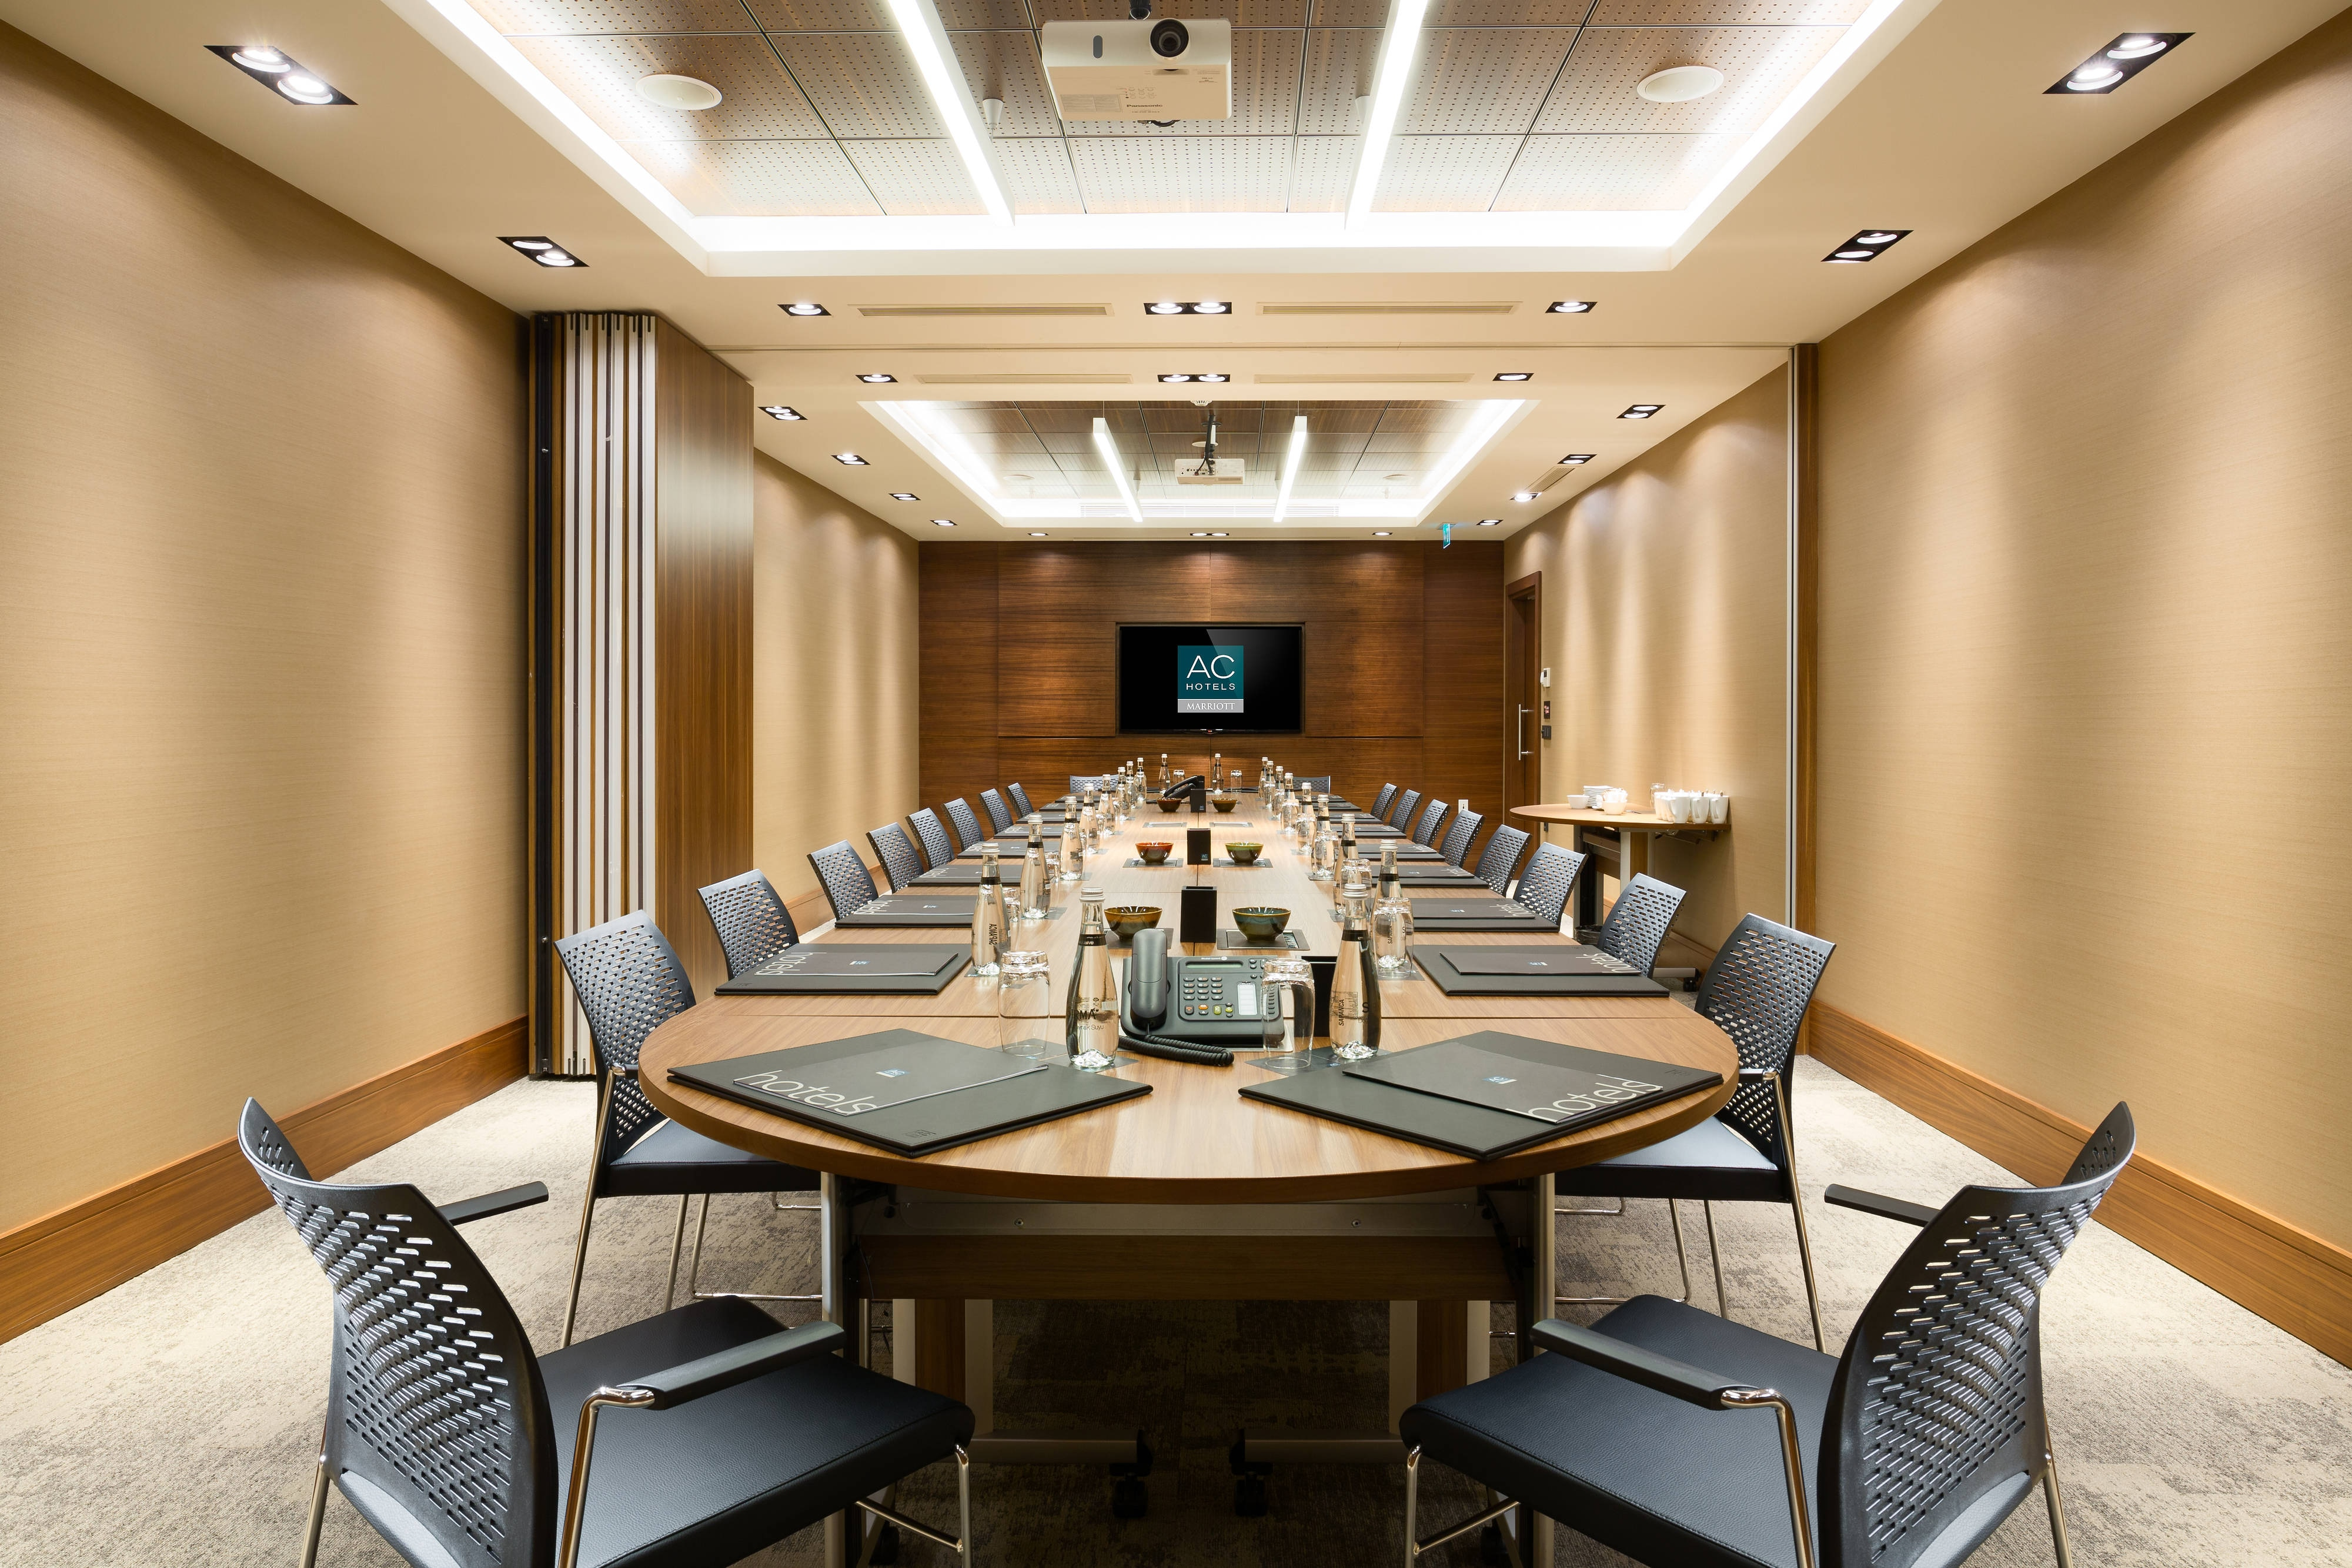 Nisantasi Meeting Room- Boardroom Setup